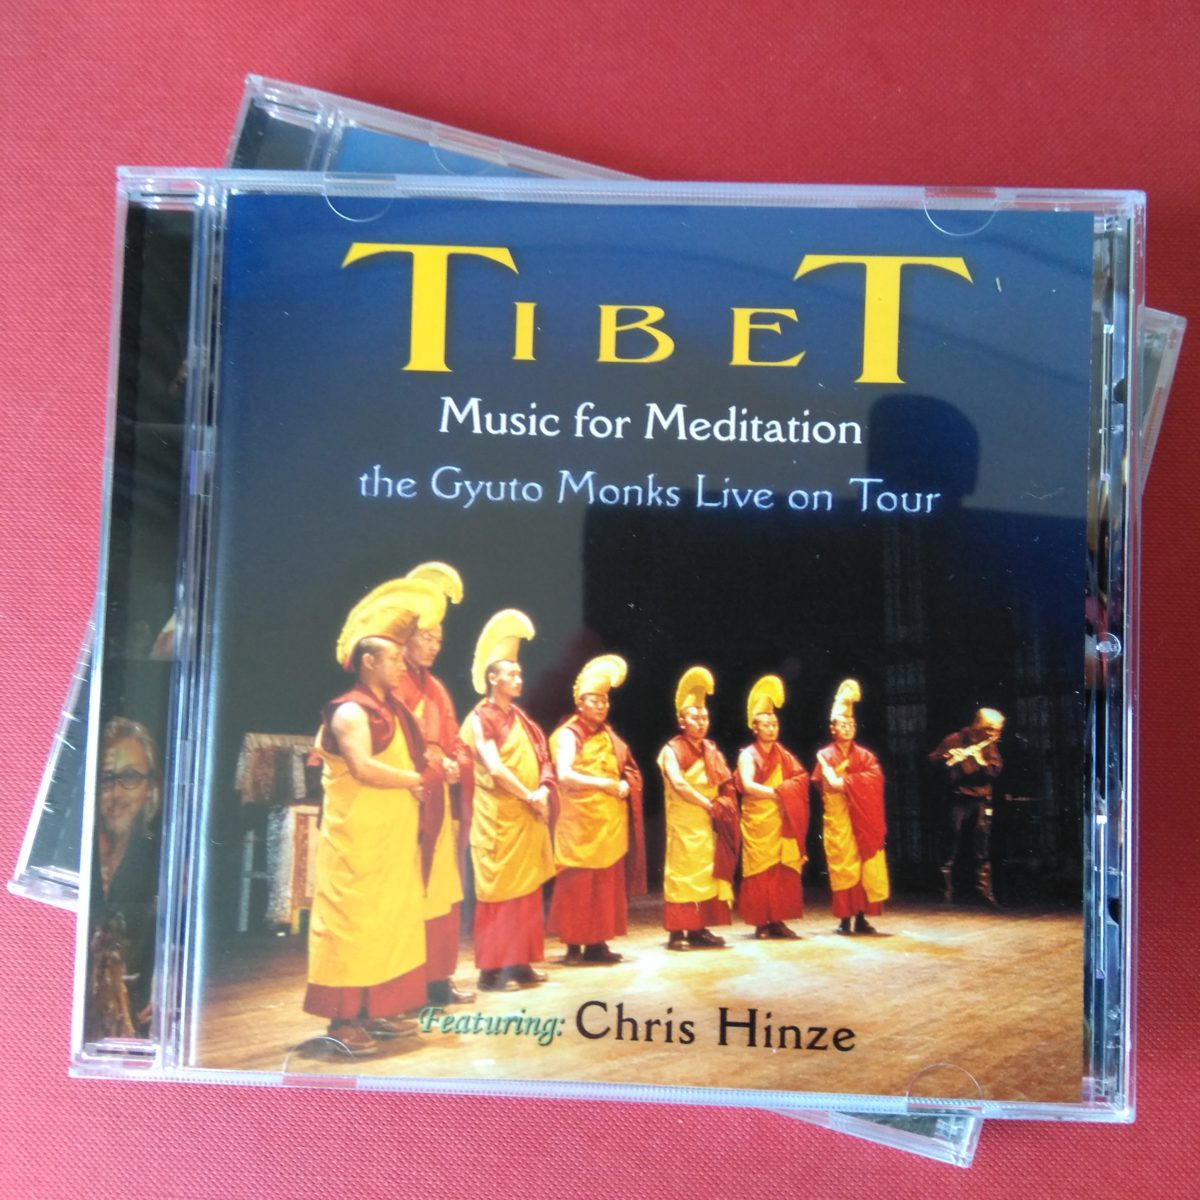 CD TIBET Music for meditation, Gyoto Monks & Chris Hinze